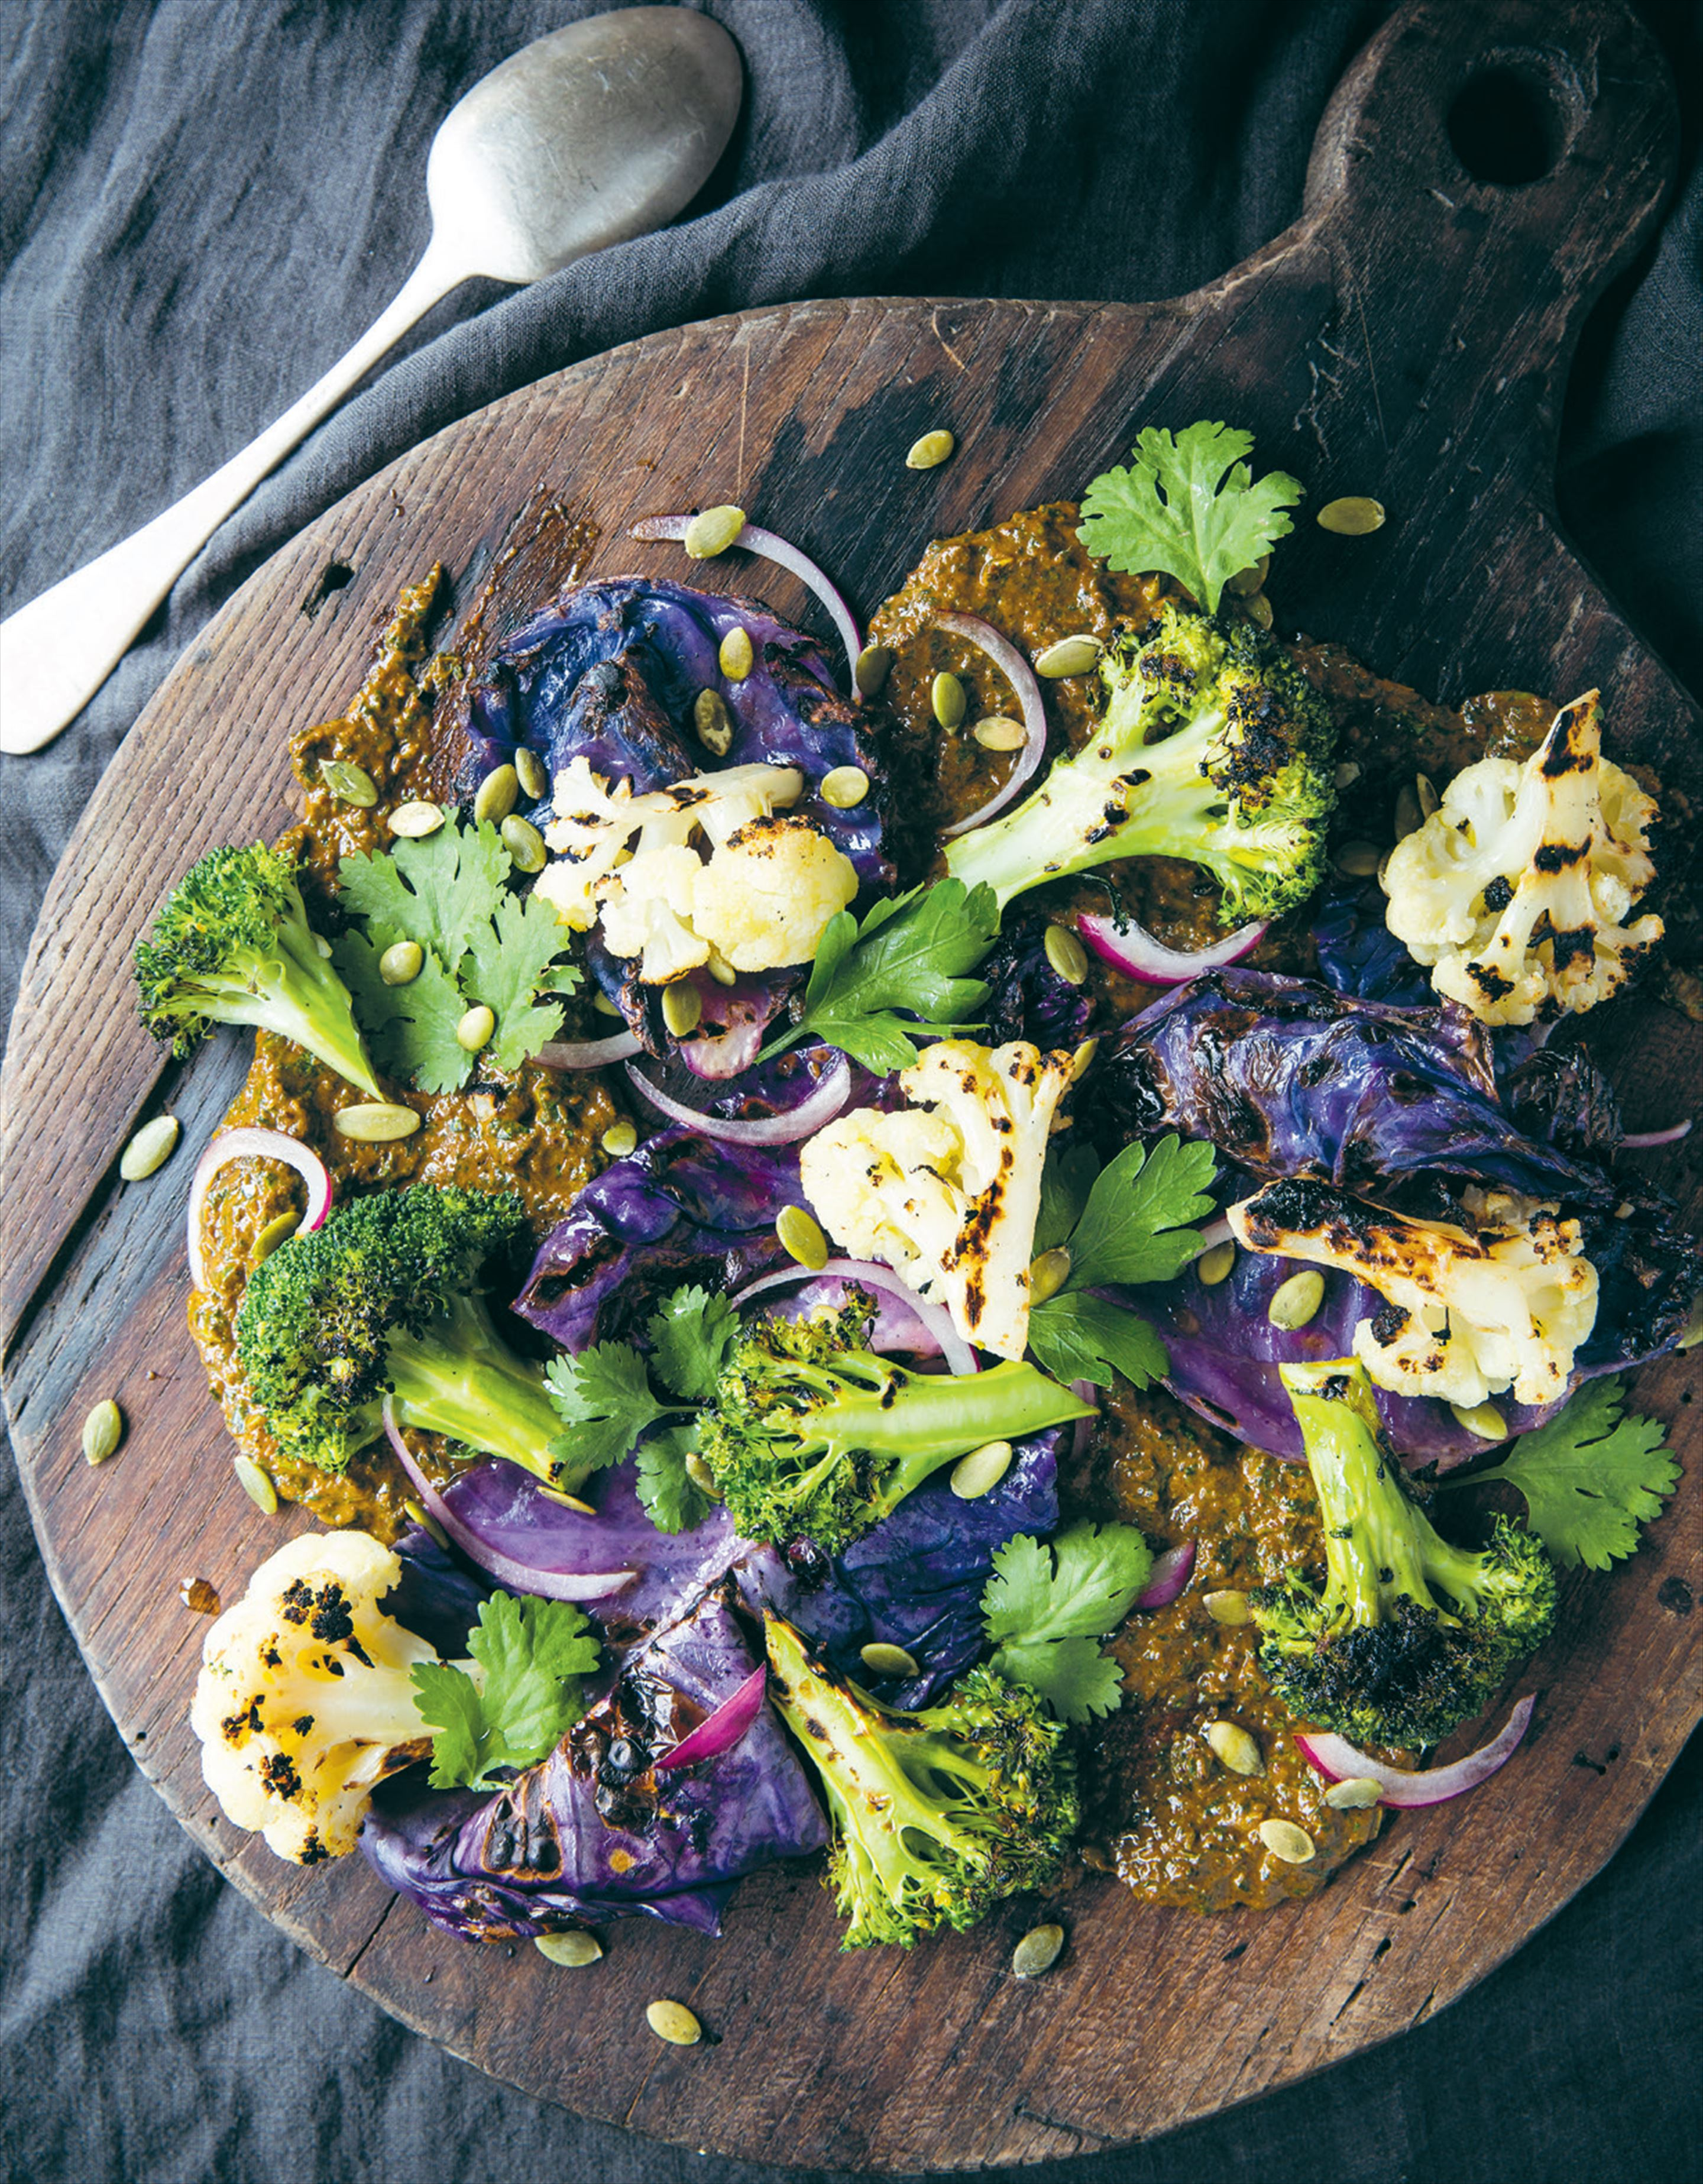 Chargrilled broccoli & cauliflower salad